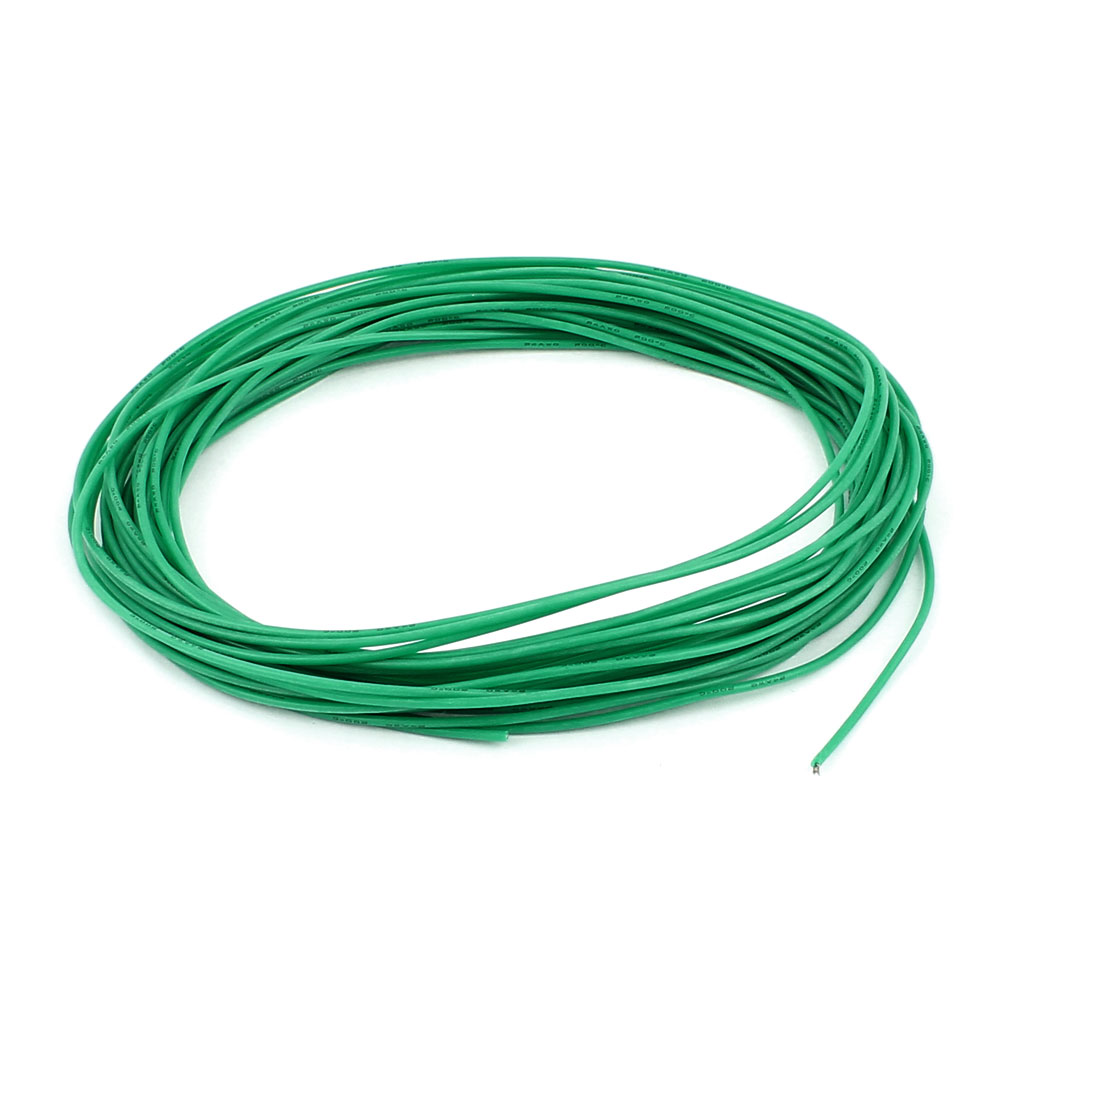 10M 24AWG Electric Copper Core Flexible Silicone Wire Cable Green